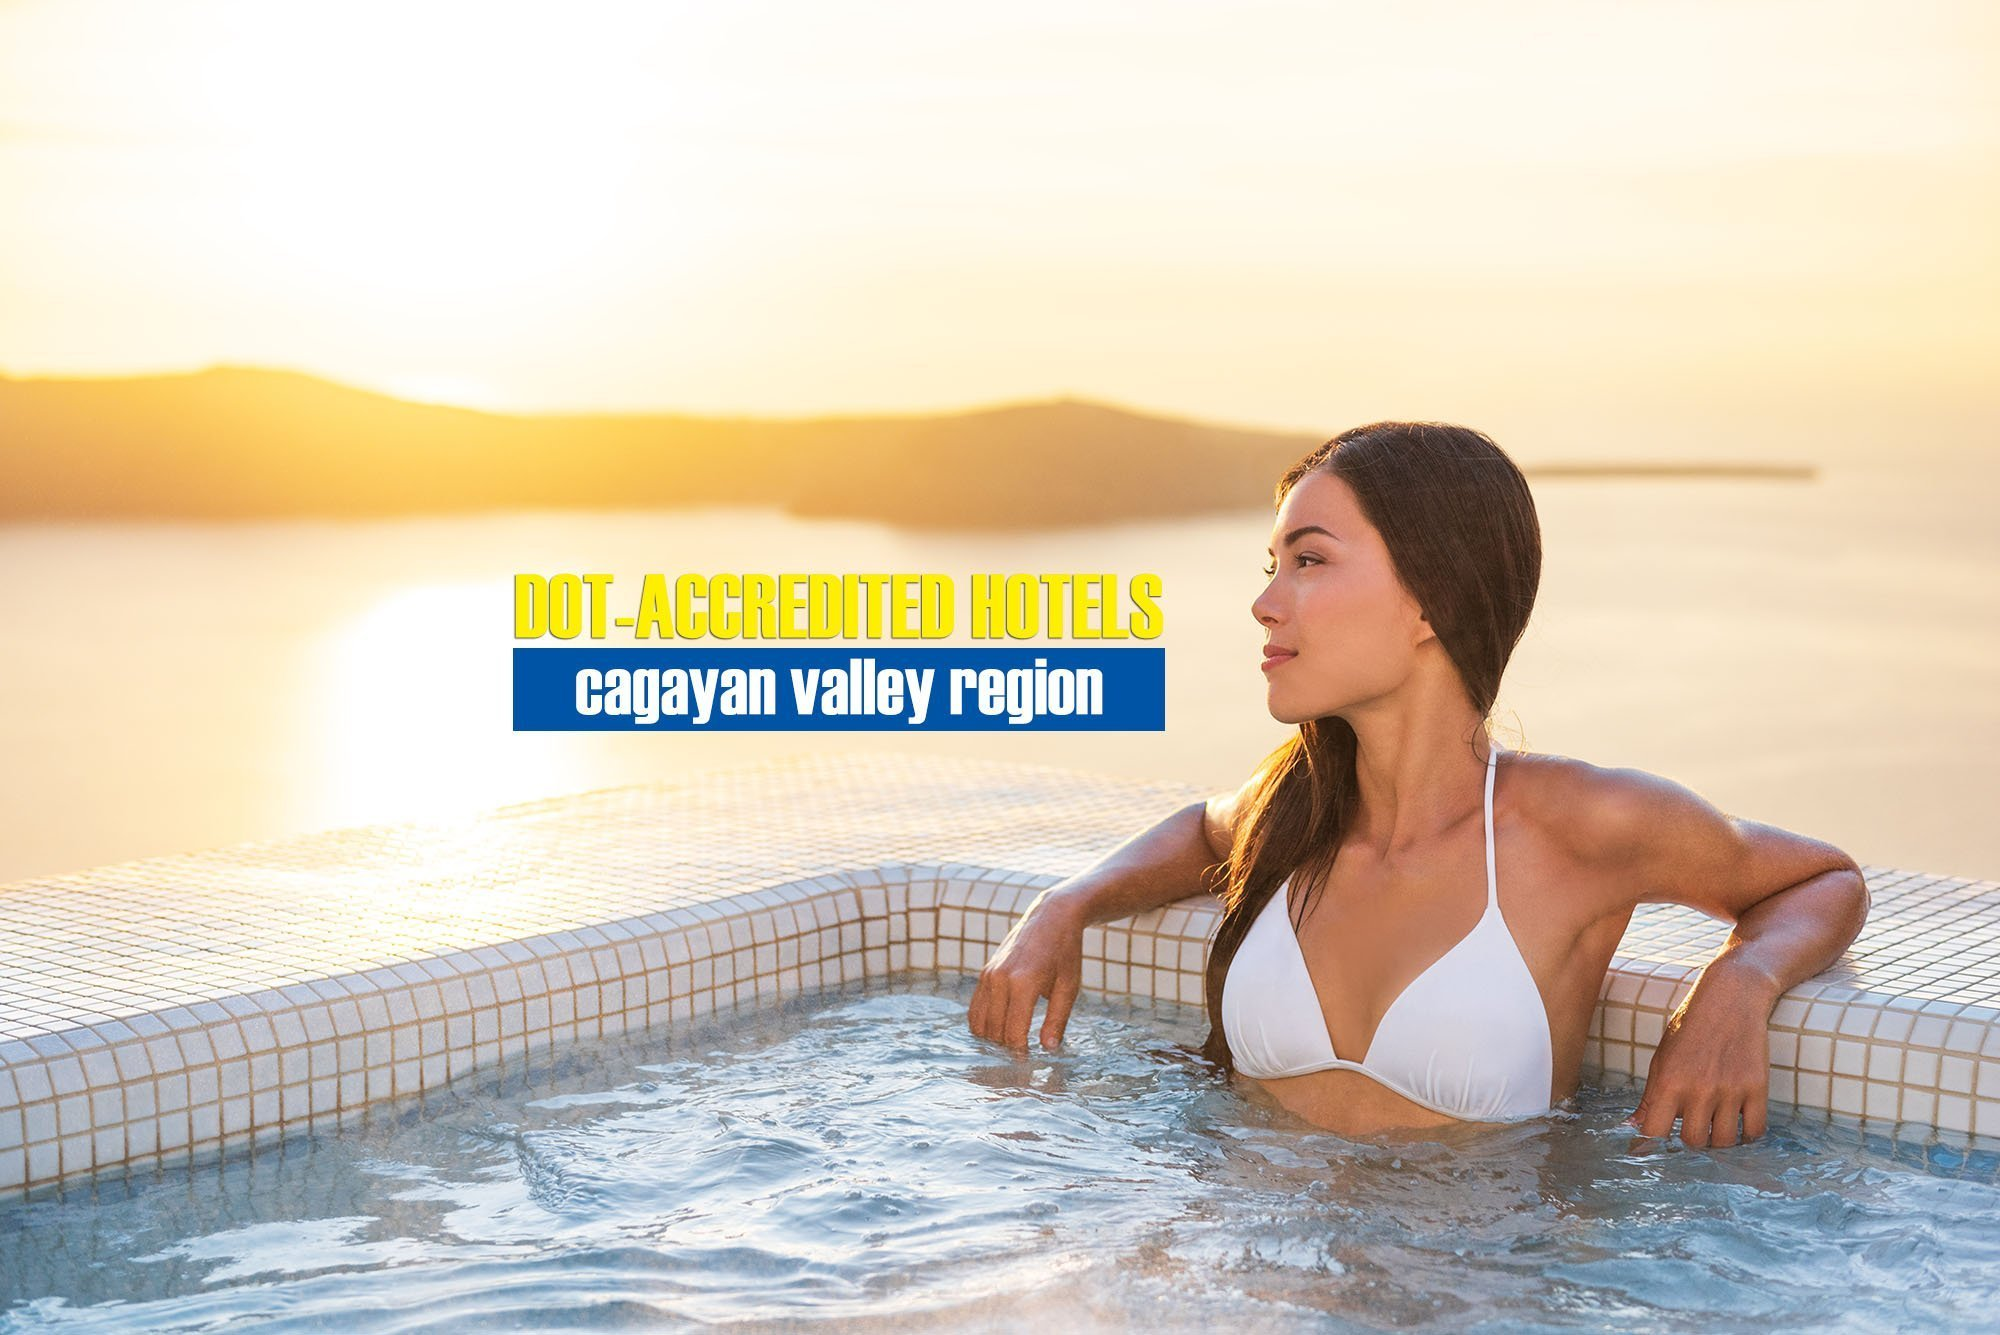 List of DOT-Accredited Hotels in Cagayan Valley Region